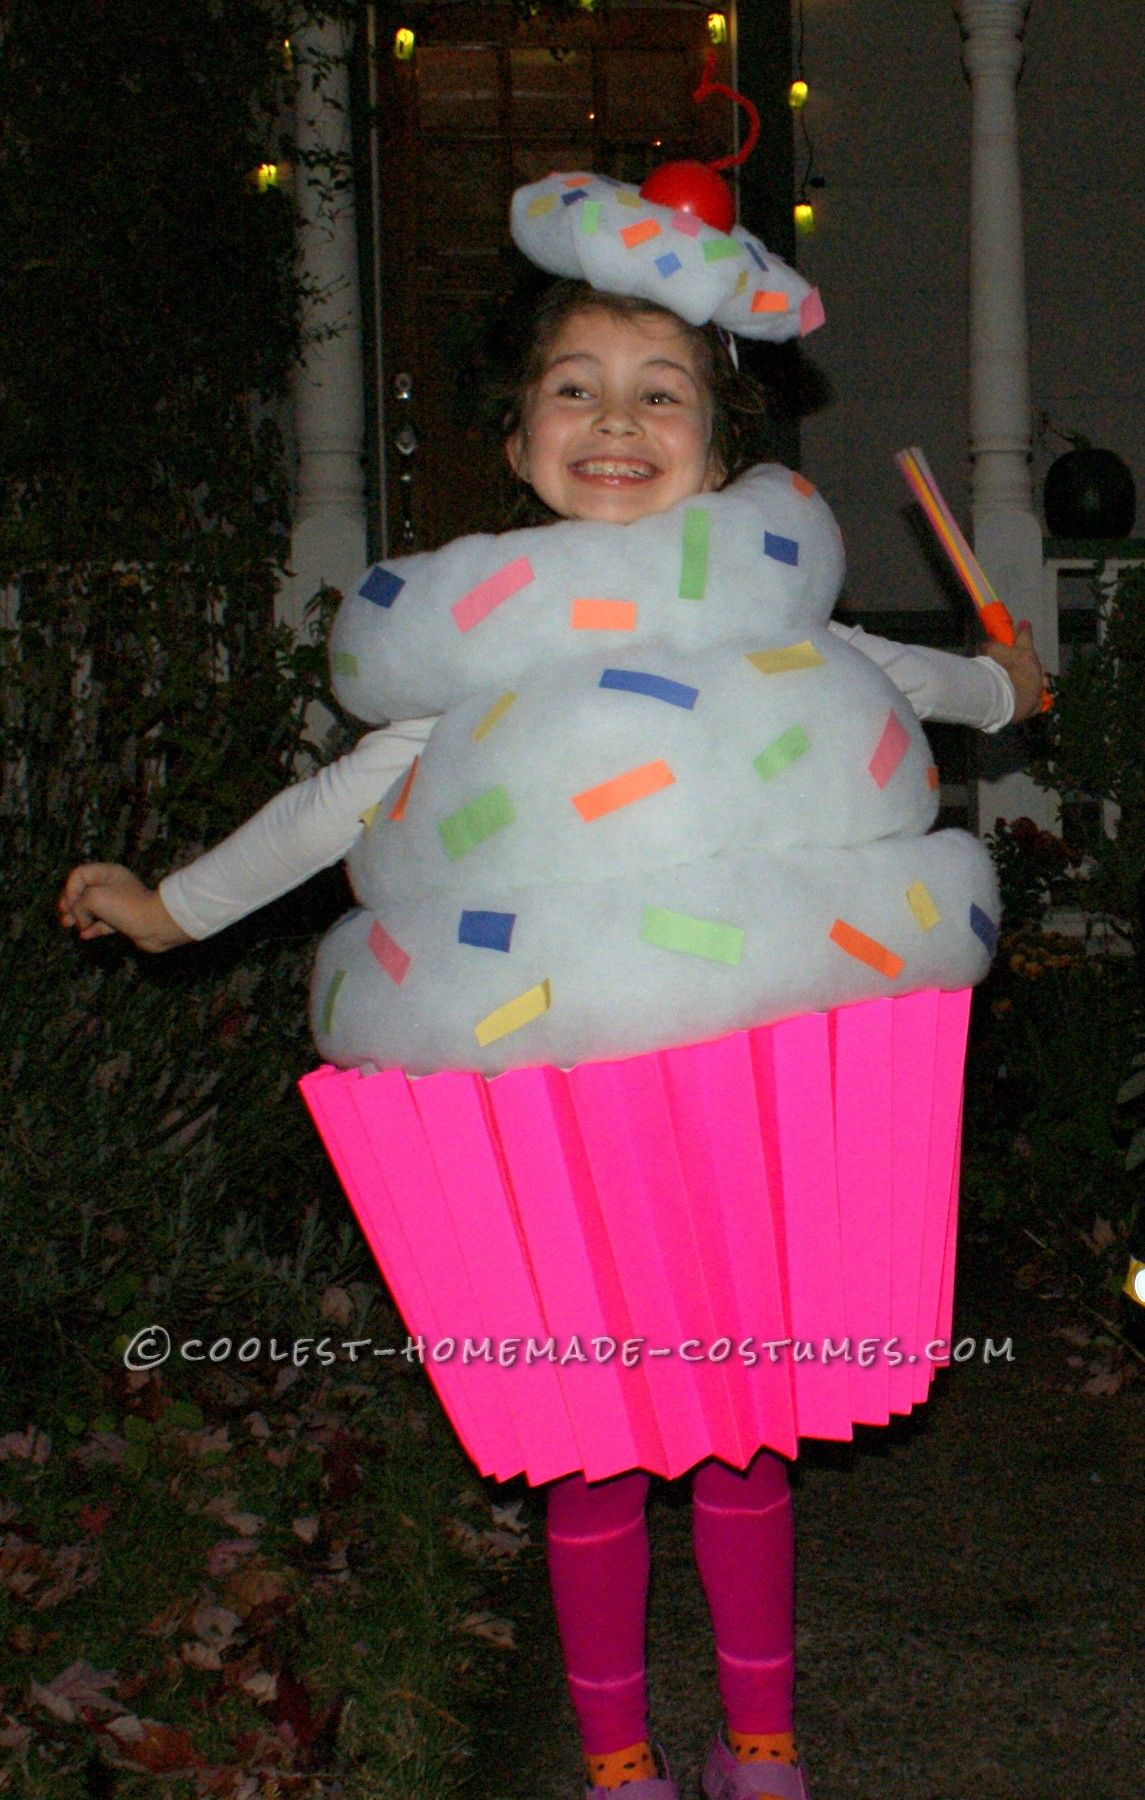 best homemade cupcake costume for a girl | coolest homemade costumes